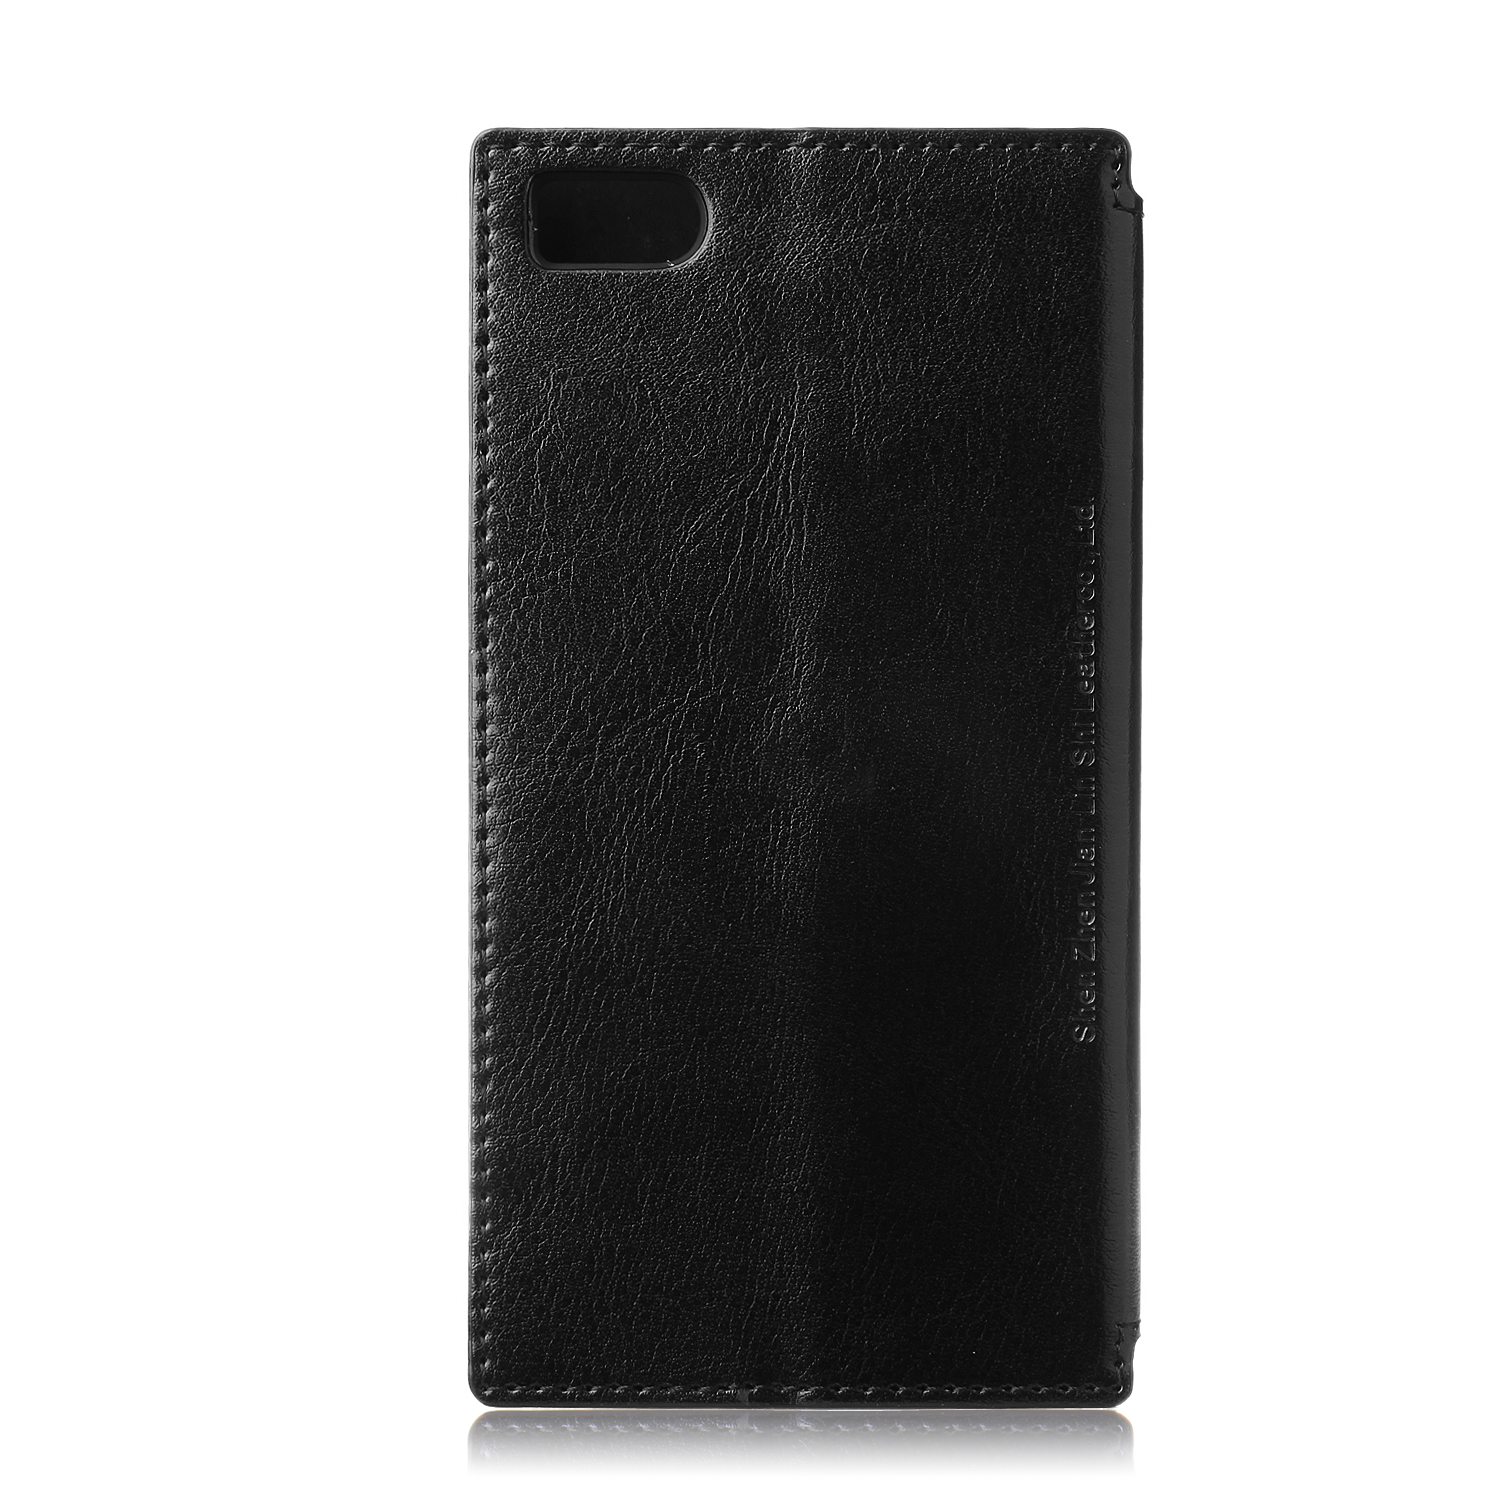 Leather Flip Cover Stand Case for XIAOMI MI3 Smartphone Black